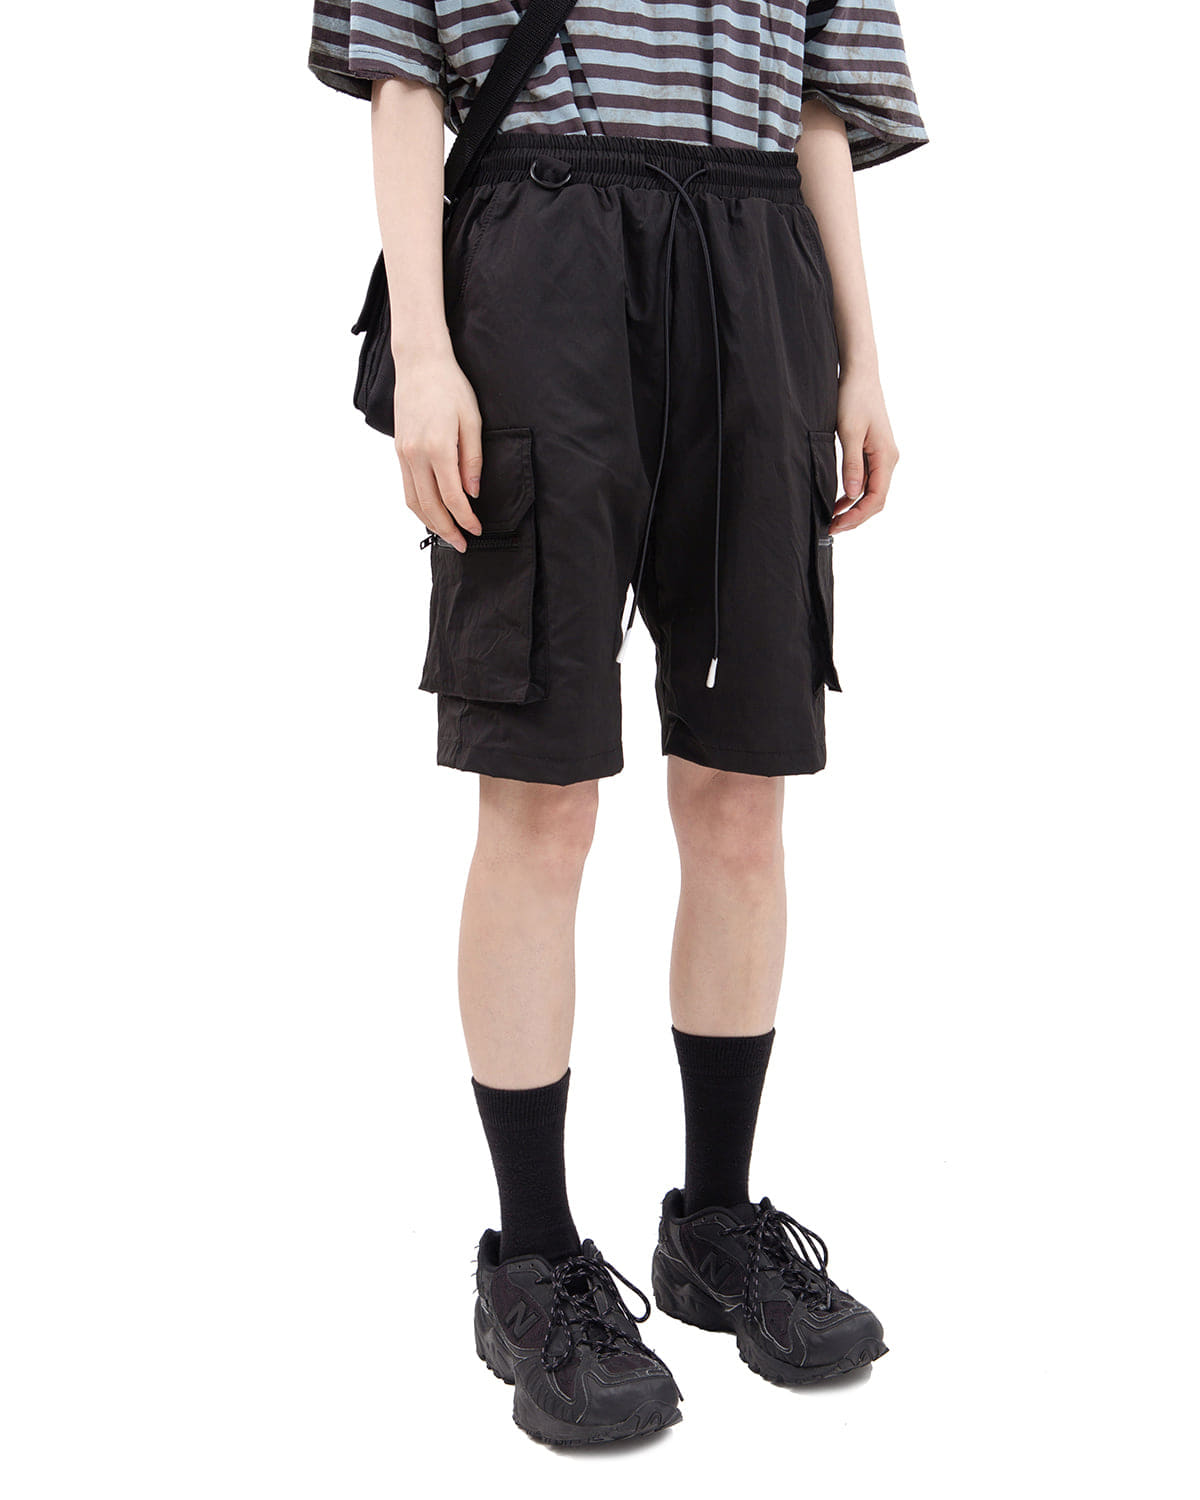 raucohouse-D-RING DETAIL CARGO POCKET SHORT PANTS - RAUCO HOUSE♡韓國男裝褲子